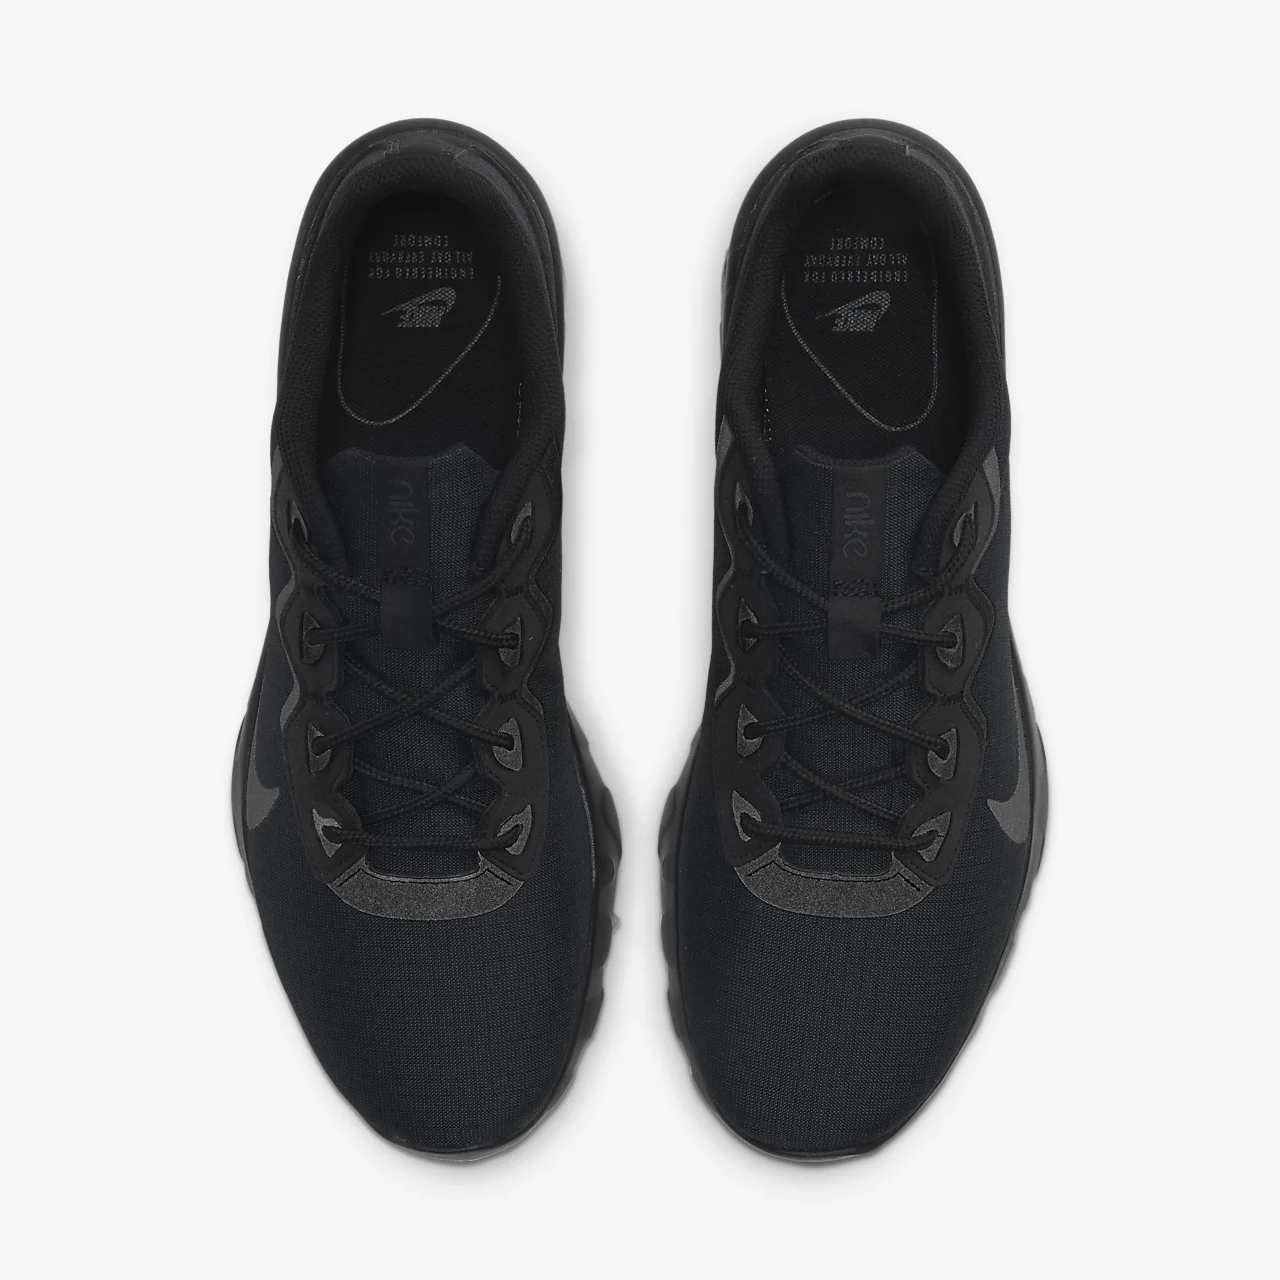 유럽직배송 나이키 NIKE Nike Explore Strada Men's Shoe CD7093-002